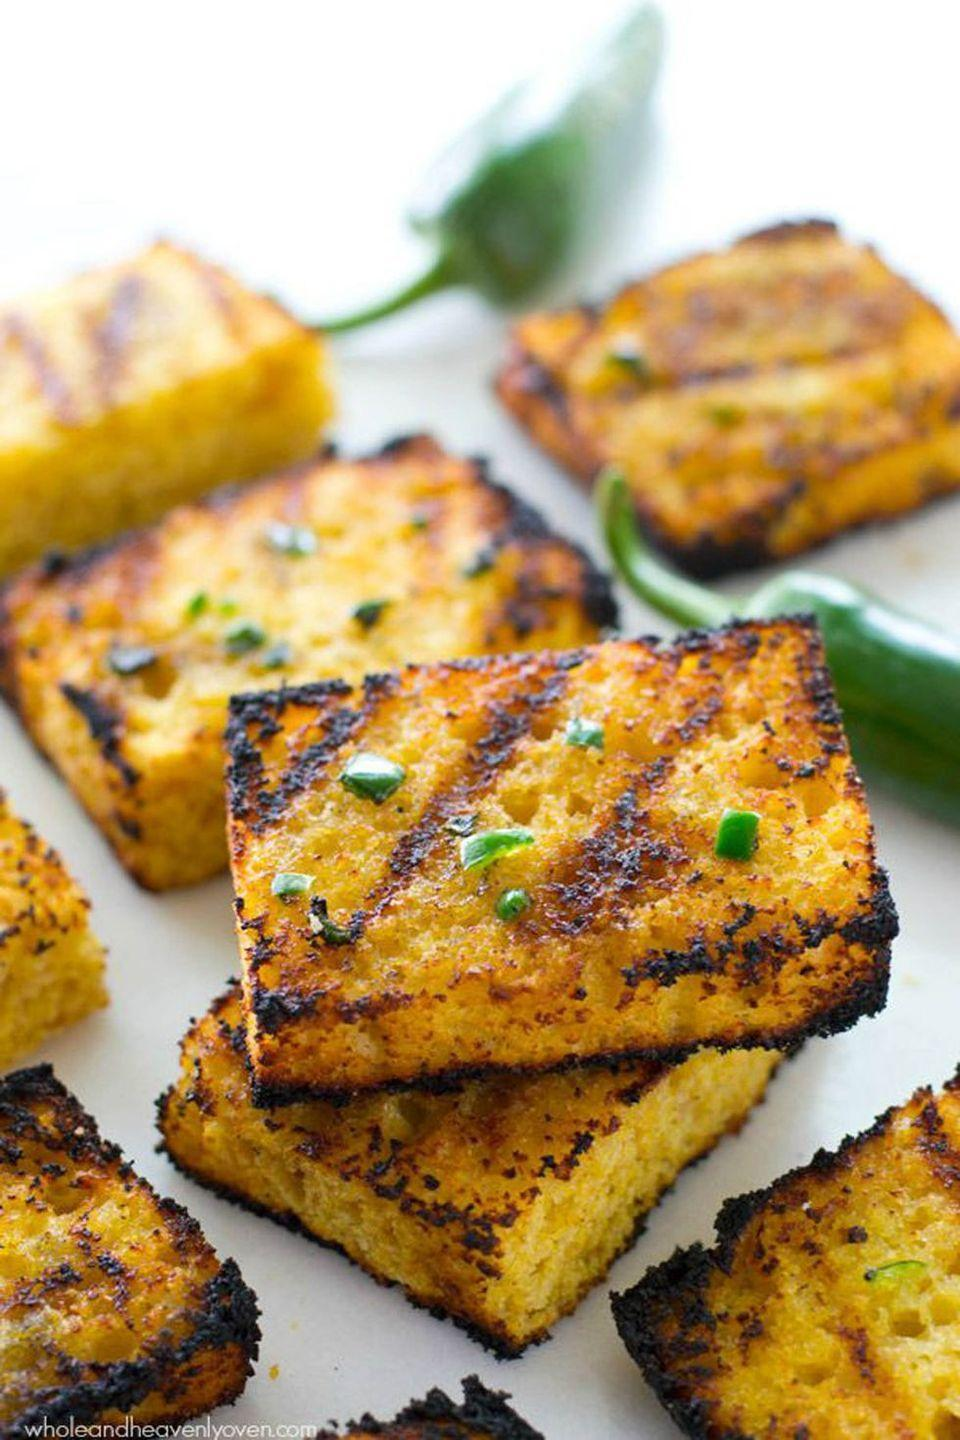 """<p>Grilled cornbread is our new favorite thing.</p><p><strong>Get the recipe at <a href=""""http://wholeandheavenlyoven.com/2015/07/20/grilled-cornbread-with-jalapeno-honey-butter/"""" rel=""""nofollow noopener"""" target=""""_blank"""" data-ylk=""""slk:Whole and Heavenly Oven"""" class=""""link rapid-noclick-resp"""">Whole and Heavenly Oven</a>.</strong> </p><p><strong><a class=""""link rapid-noclick-resp"""" href=""""https://go.redirectingat.com?id=74968X1596630&url=https%3A%2F%2Fwww.walmart.com%2Fip%2FThe-Pioneer-Woman-Timeless-Beauty-Pre-Seasoned-Plus-20-Cast-Iron-Double-Griddle%2F117723541&sref=https%3A%2F%2Fwww.thepioneerwoman.com%2Ffood-cooking%2Fmeals-menus%2Fg32188535%2Fbest-grilling-recipes%2F"""" rel=""""nofollow noopener"""" target=""""_blank"""" data-ylk=""""slk:SHOP GRIDDLES"""">SHOP GRIDDLES </a></strong></p>"""